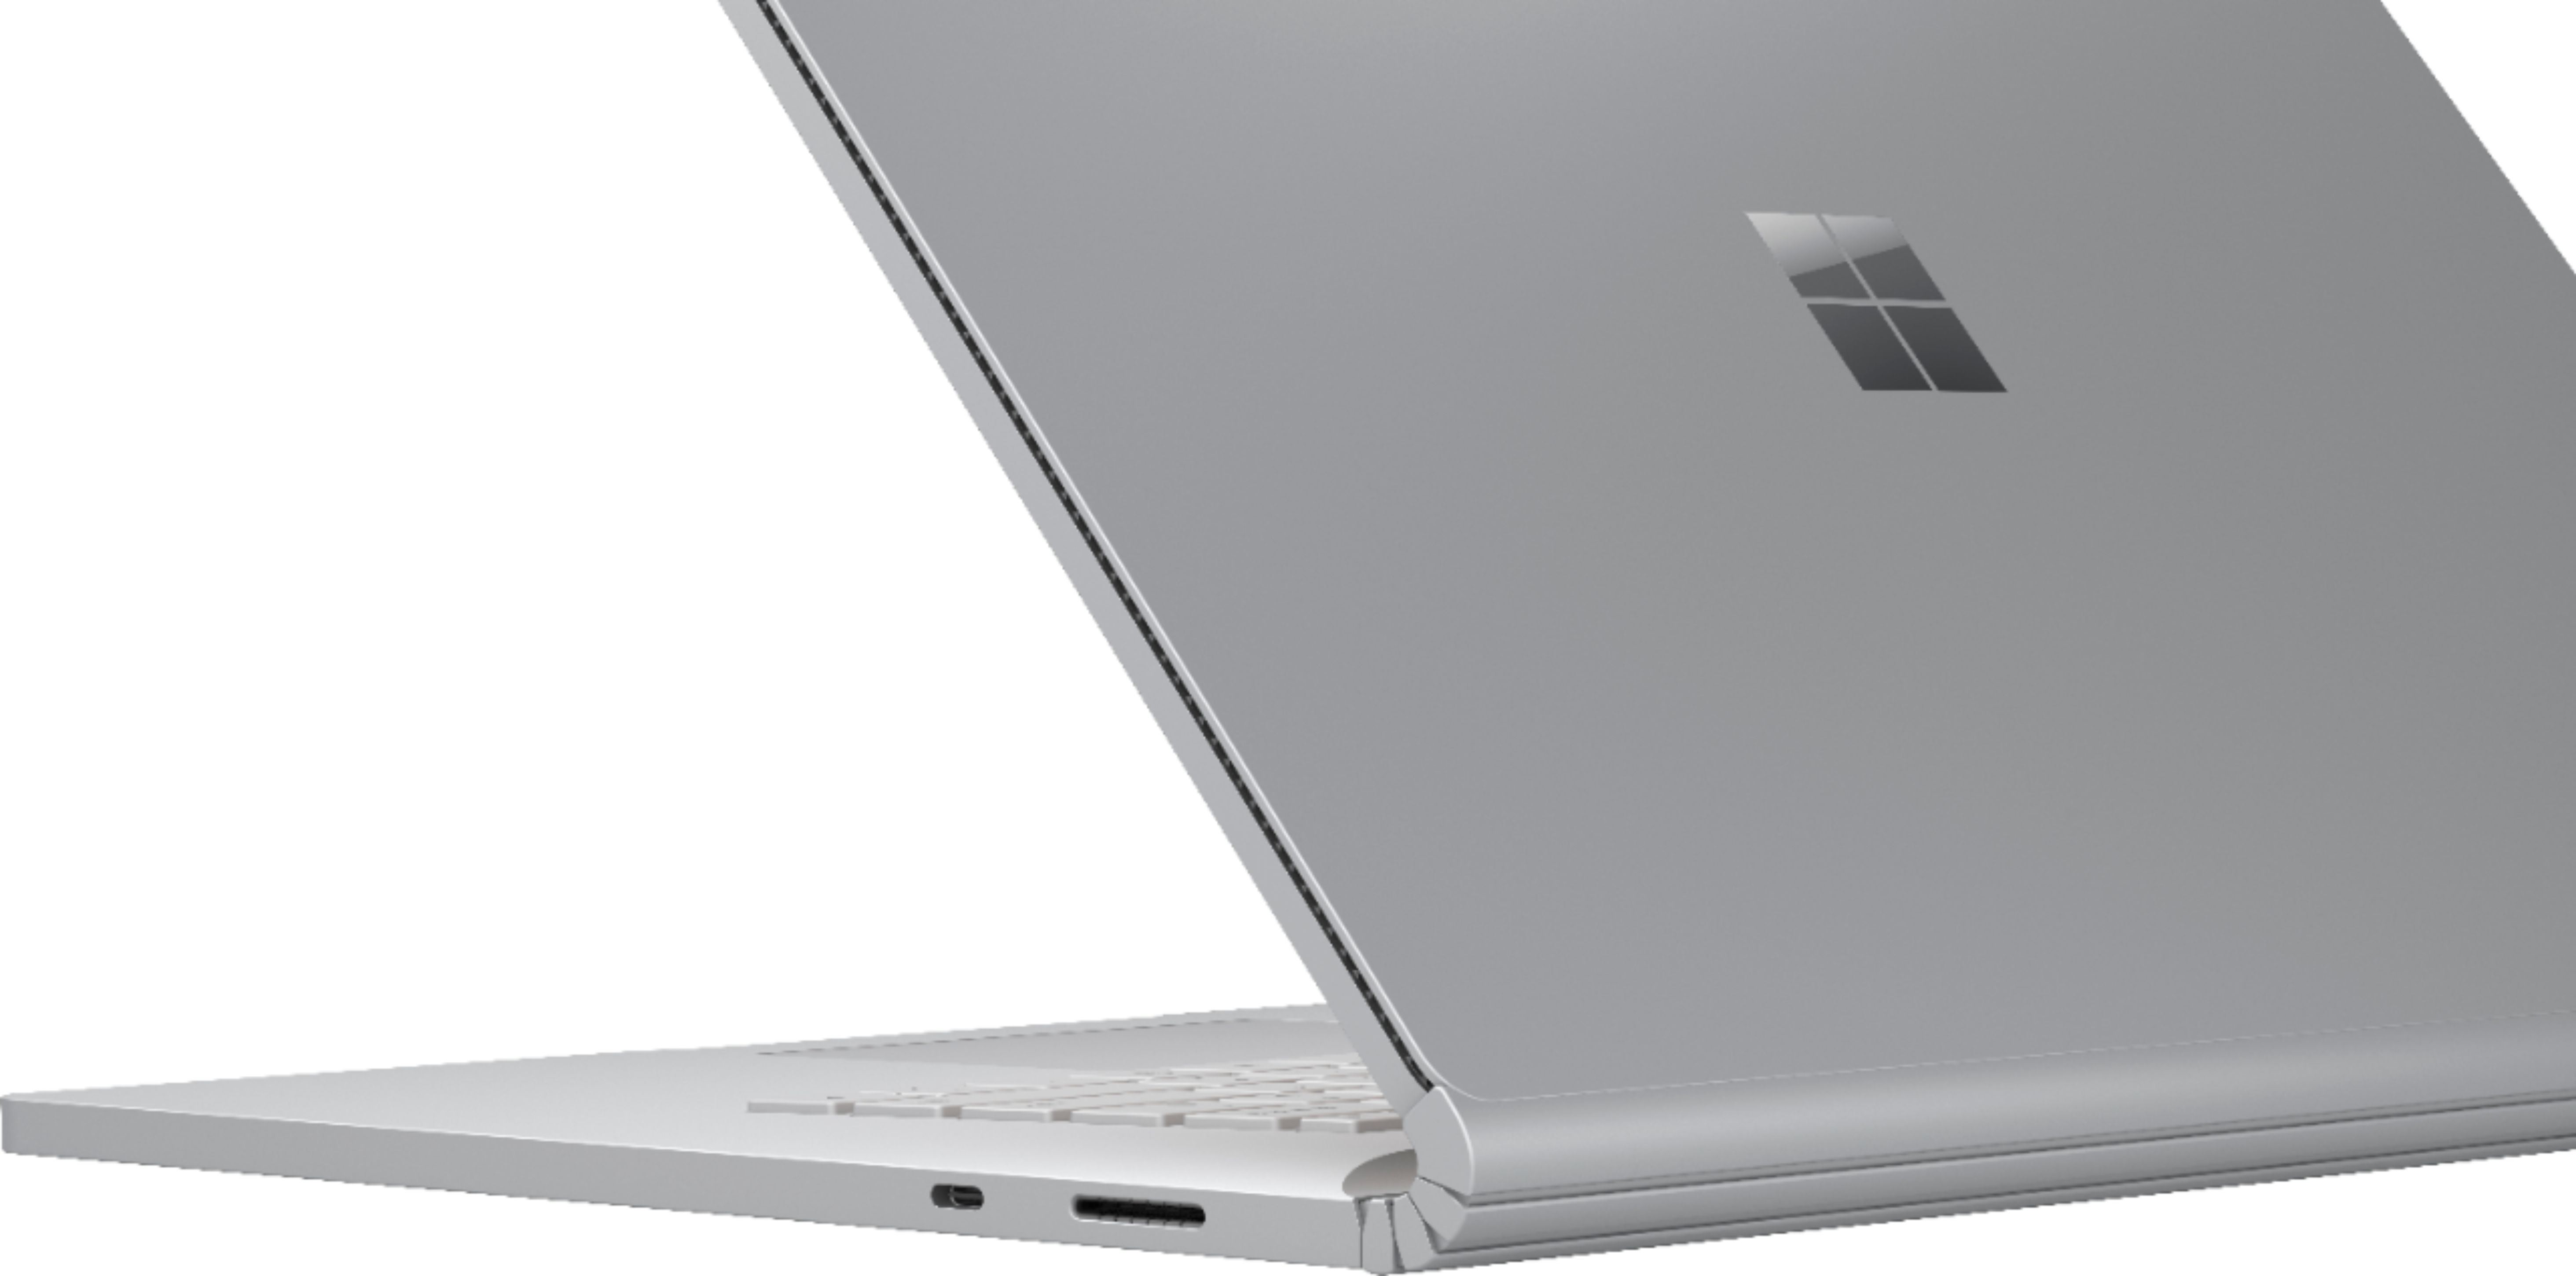 """Alt View Zoom 12. Microsoft - Surface Book 3 15"""" Touch-Screen PixelSense™ - 2-in-1 Laptop - Intel Core i7 - 16GB Memory - 256GB SSD - Platinum."""